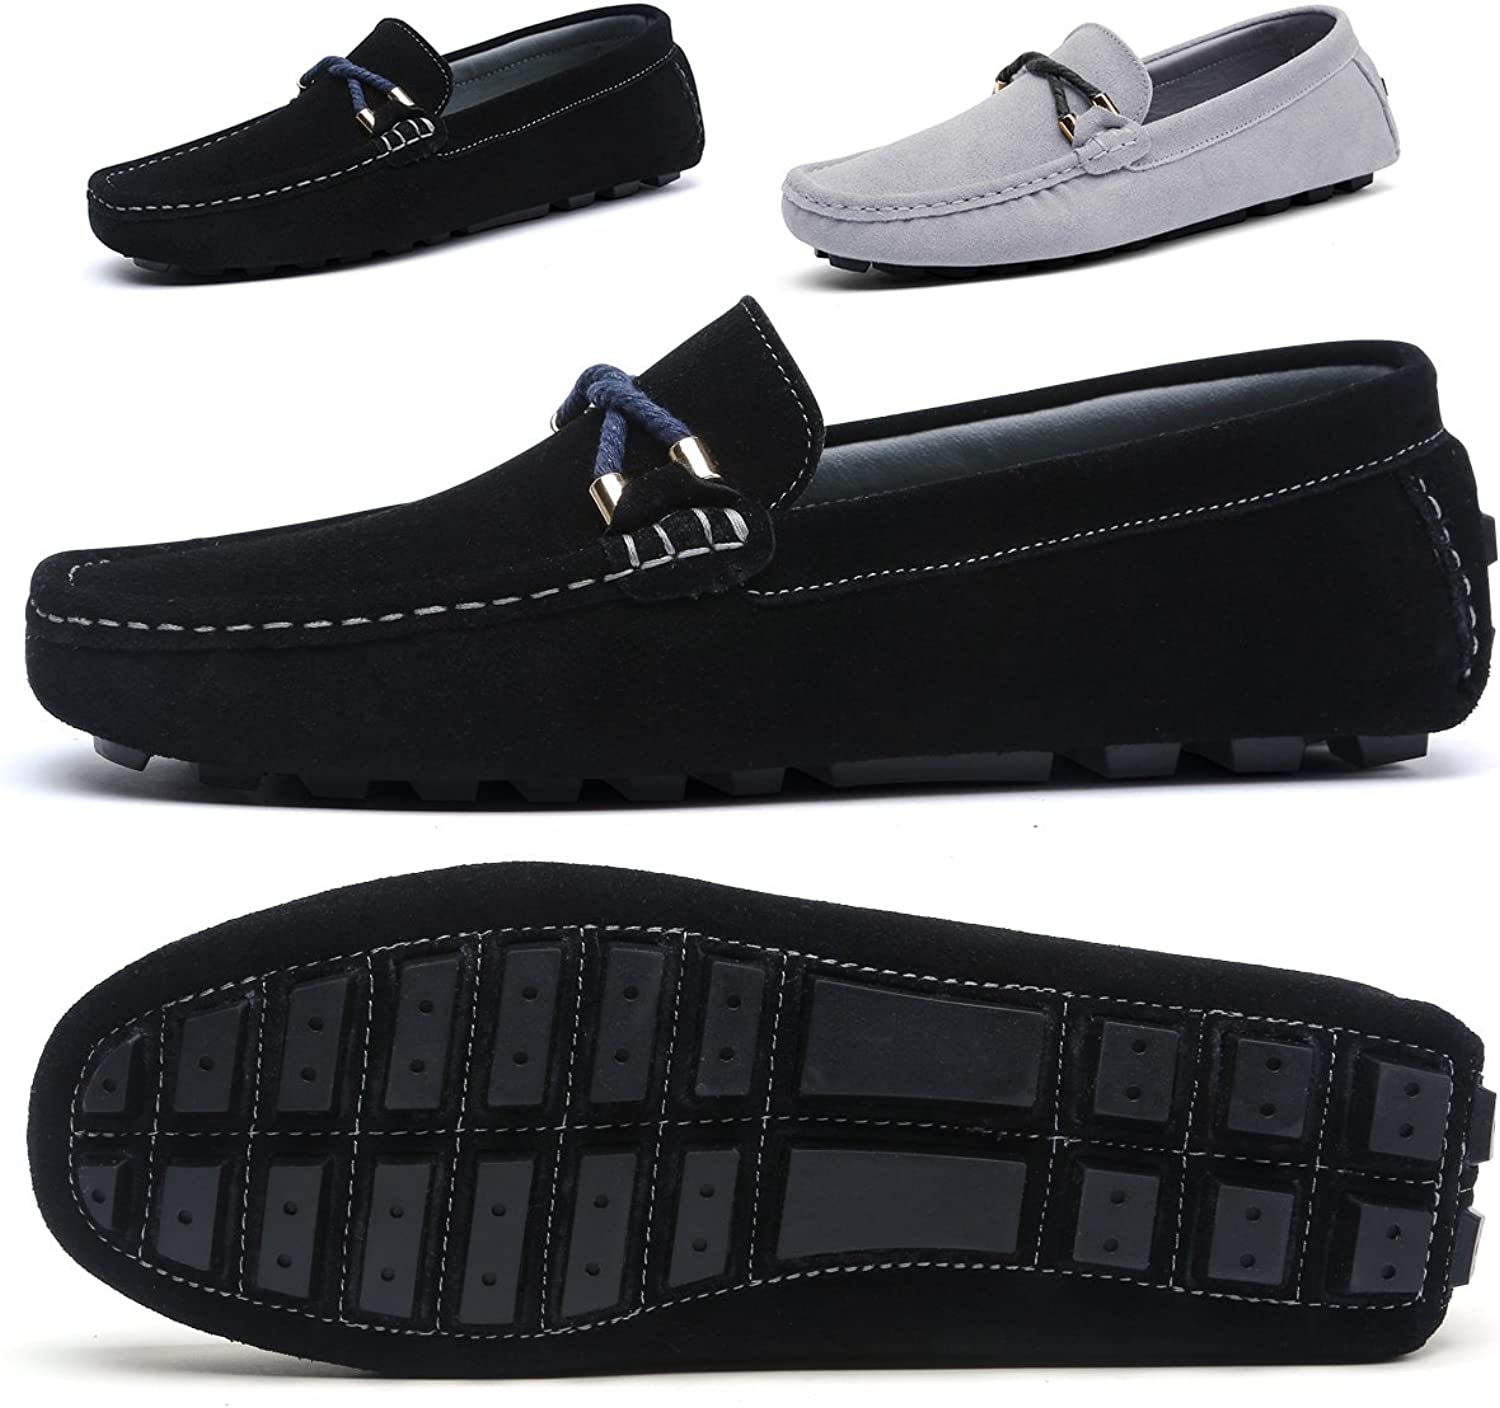 SONLLEIVOO Mens Slip On shoes Penny Loafers Moccasin Footwear Suede Driving Leather Moccasins Flat Black Boat shoes